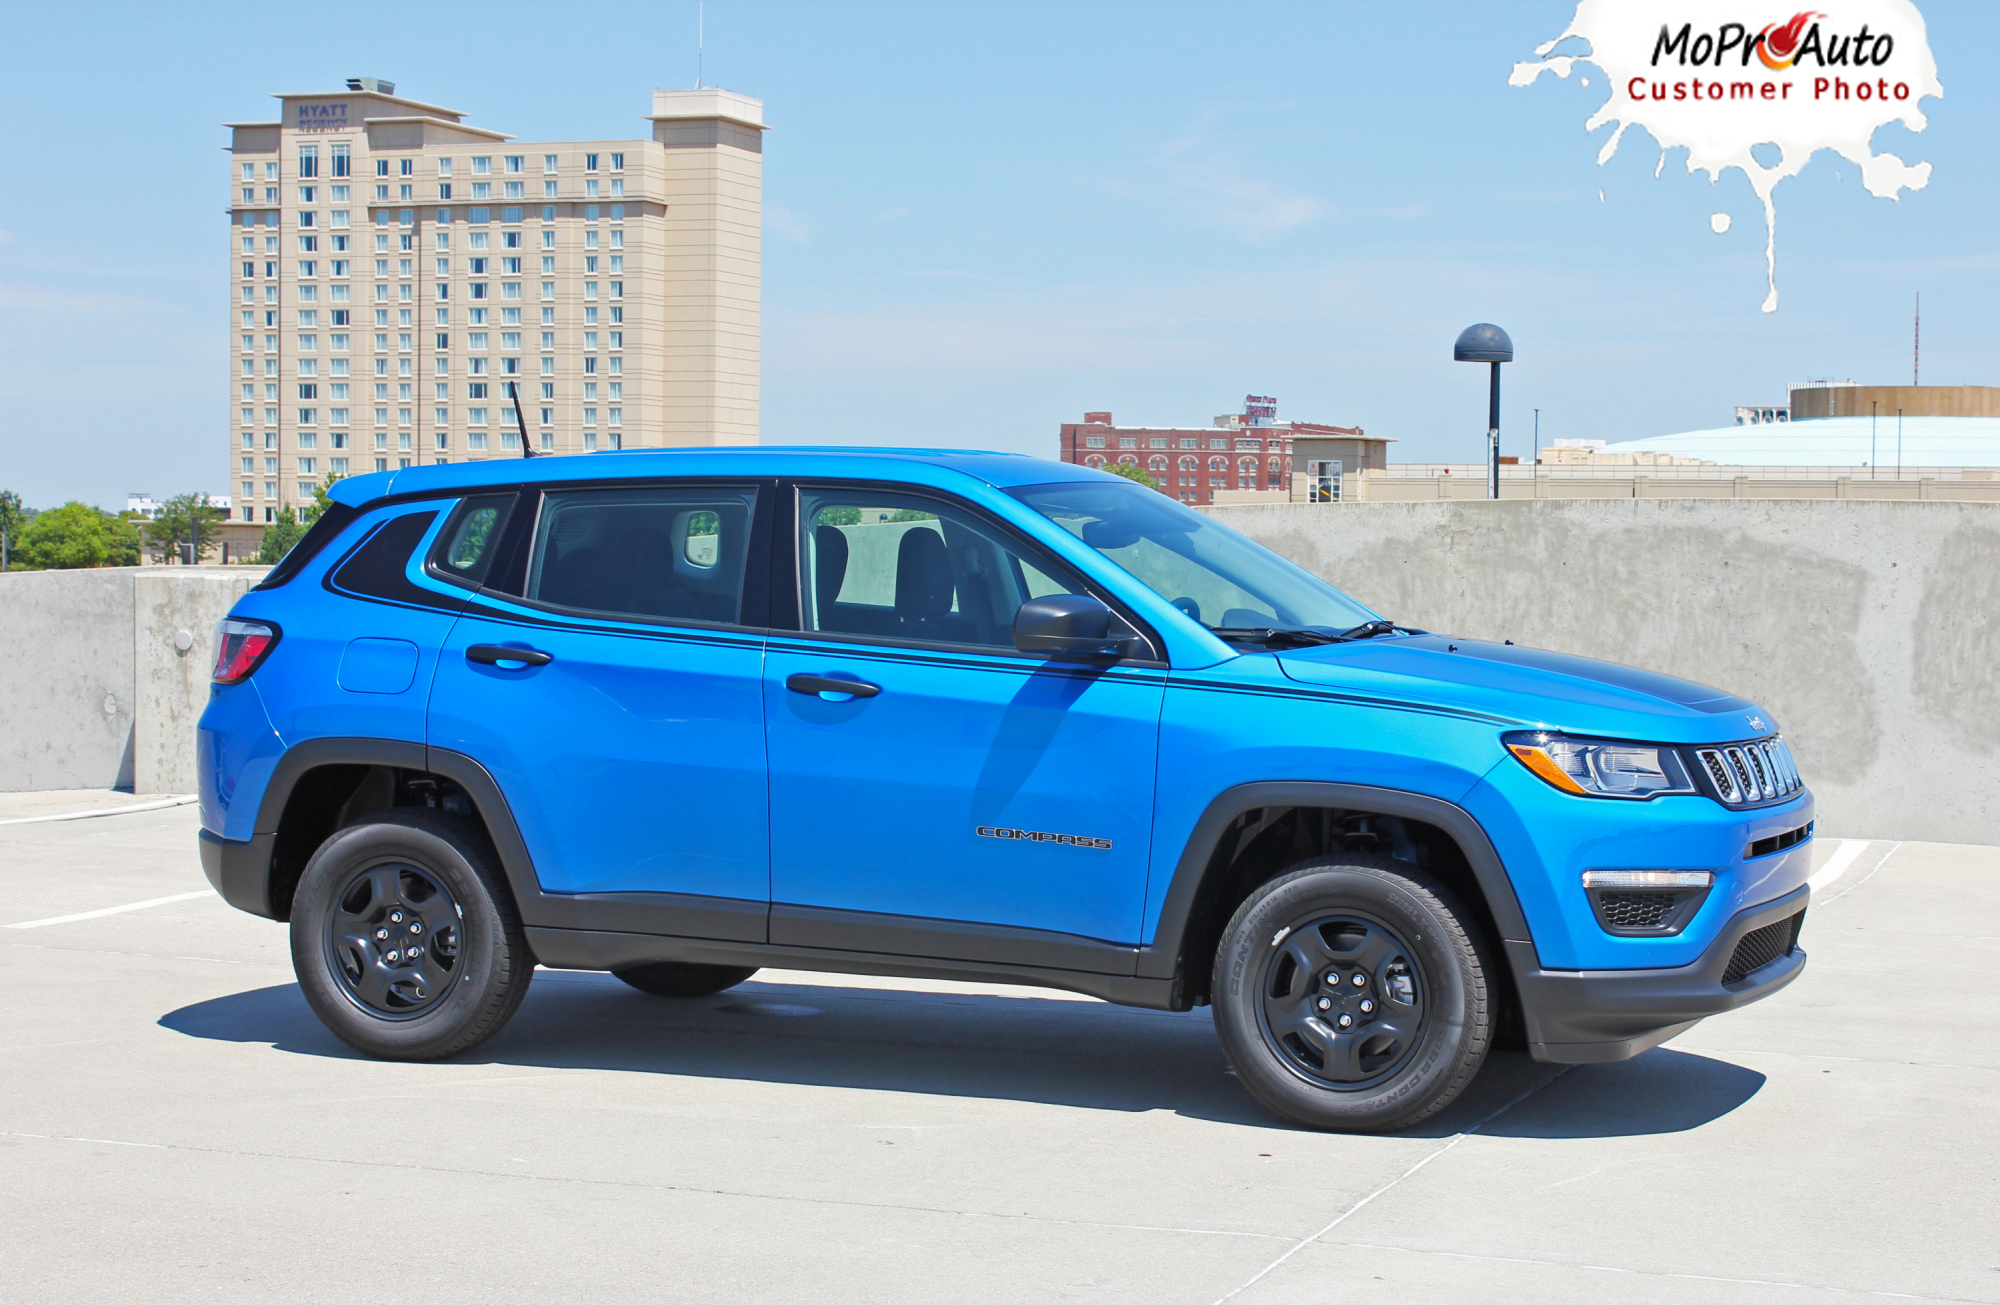 2017, 2018, 2019, 2020 Jeep Compass Vinyl Graphics Decals Stripes | Customer Photo Altitude